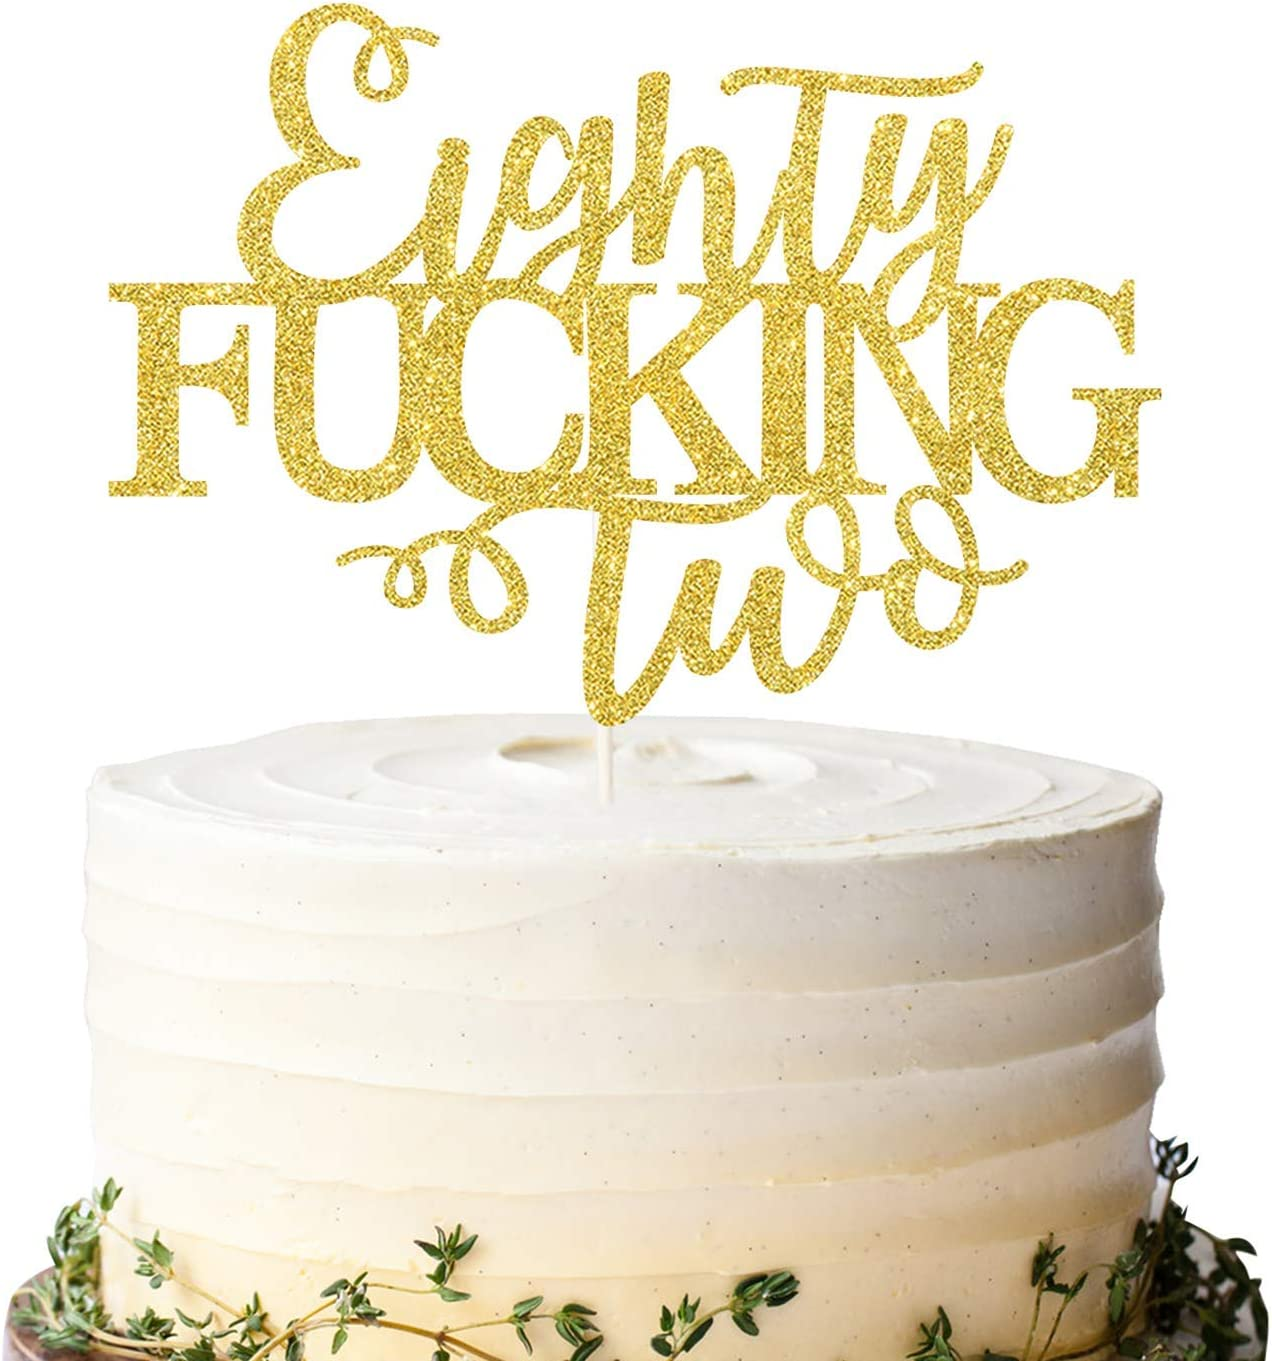 Eighty Fucking Two Cake Topper Happy 82nd Birthday Cake Topper Adult Birthday Cake Topper for 82nd Birthday Party Decoration Supplies